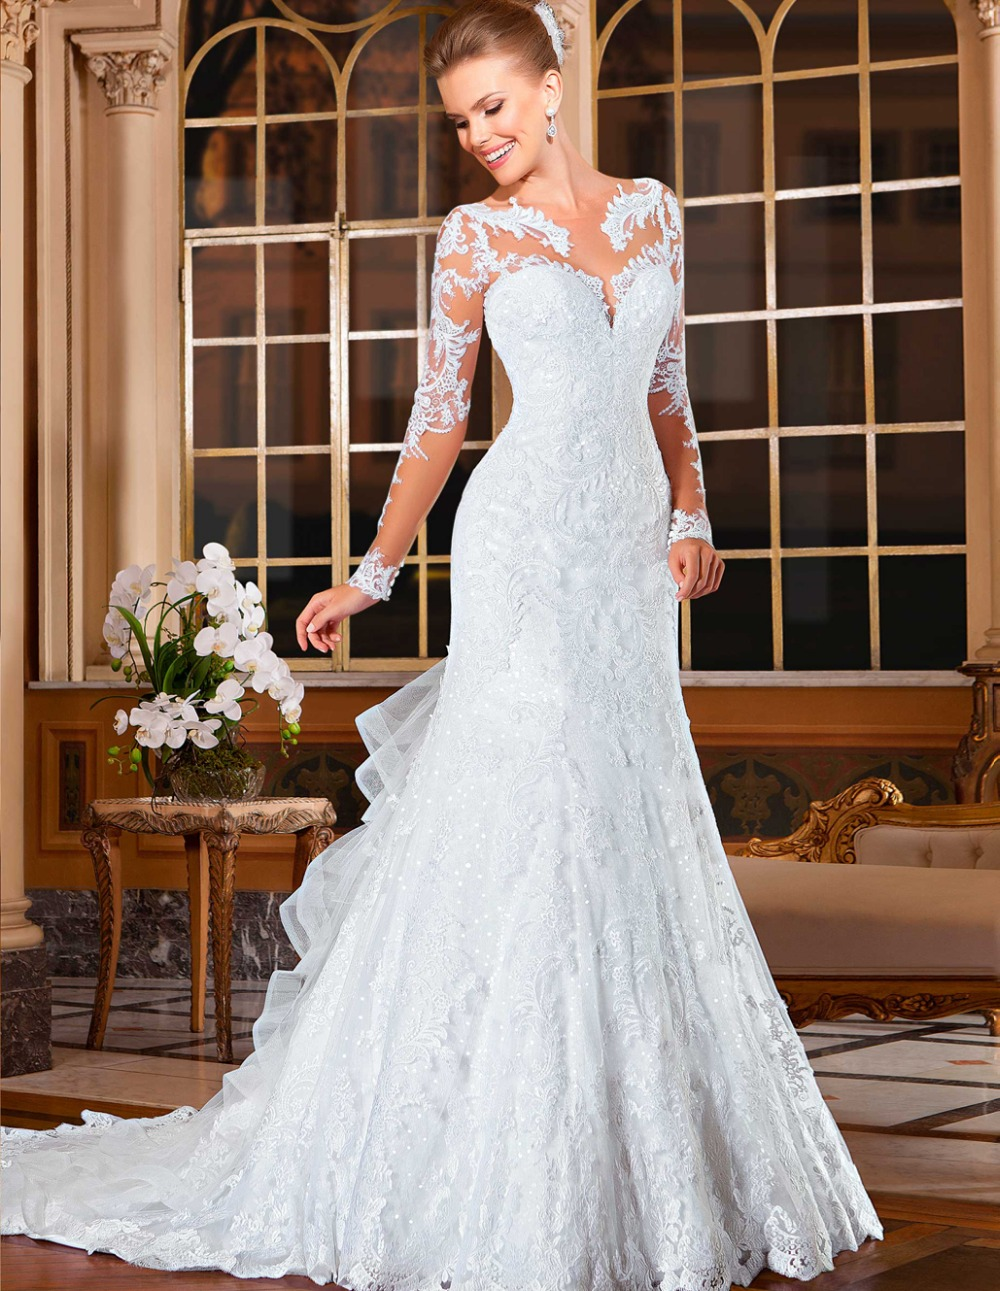 Attractive wedding gowns bridal dresses popular vintage for Wedding dresses with sleeves cheap